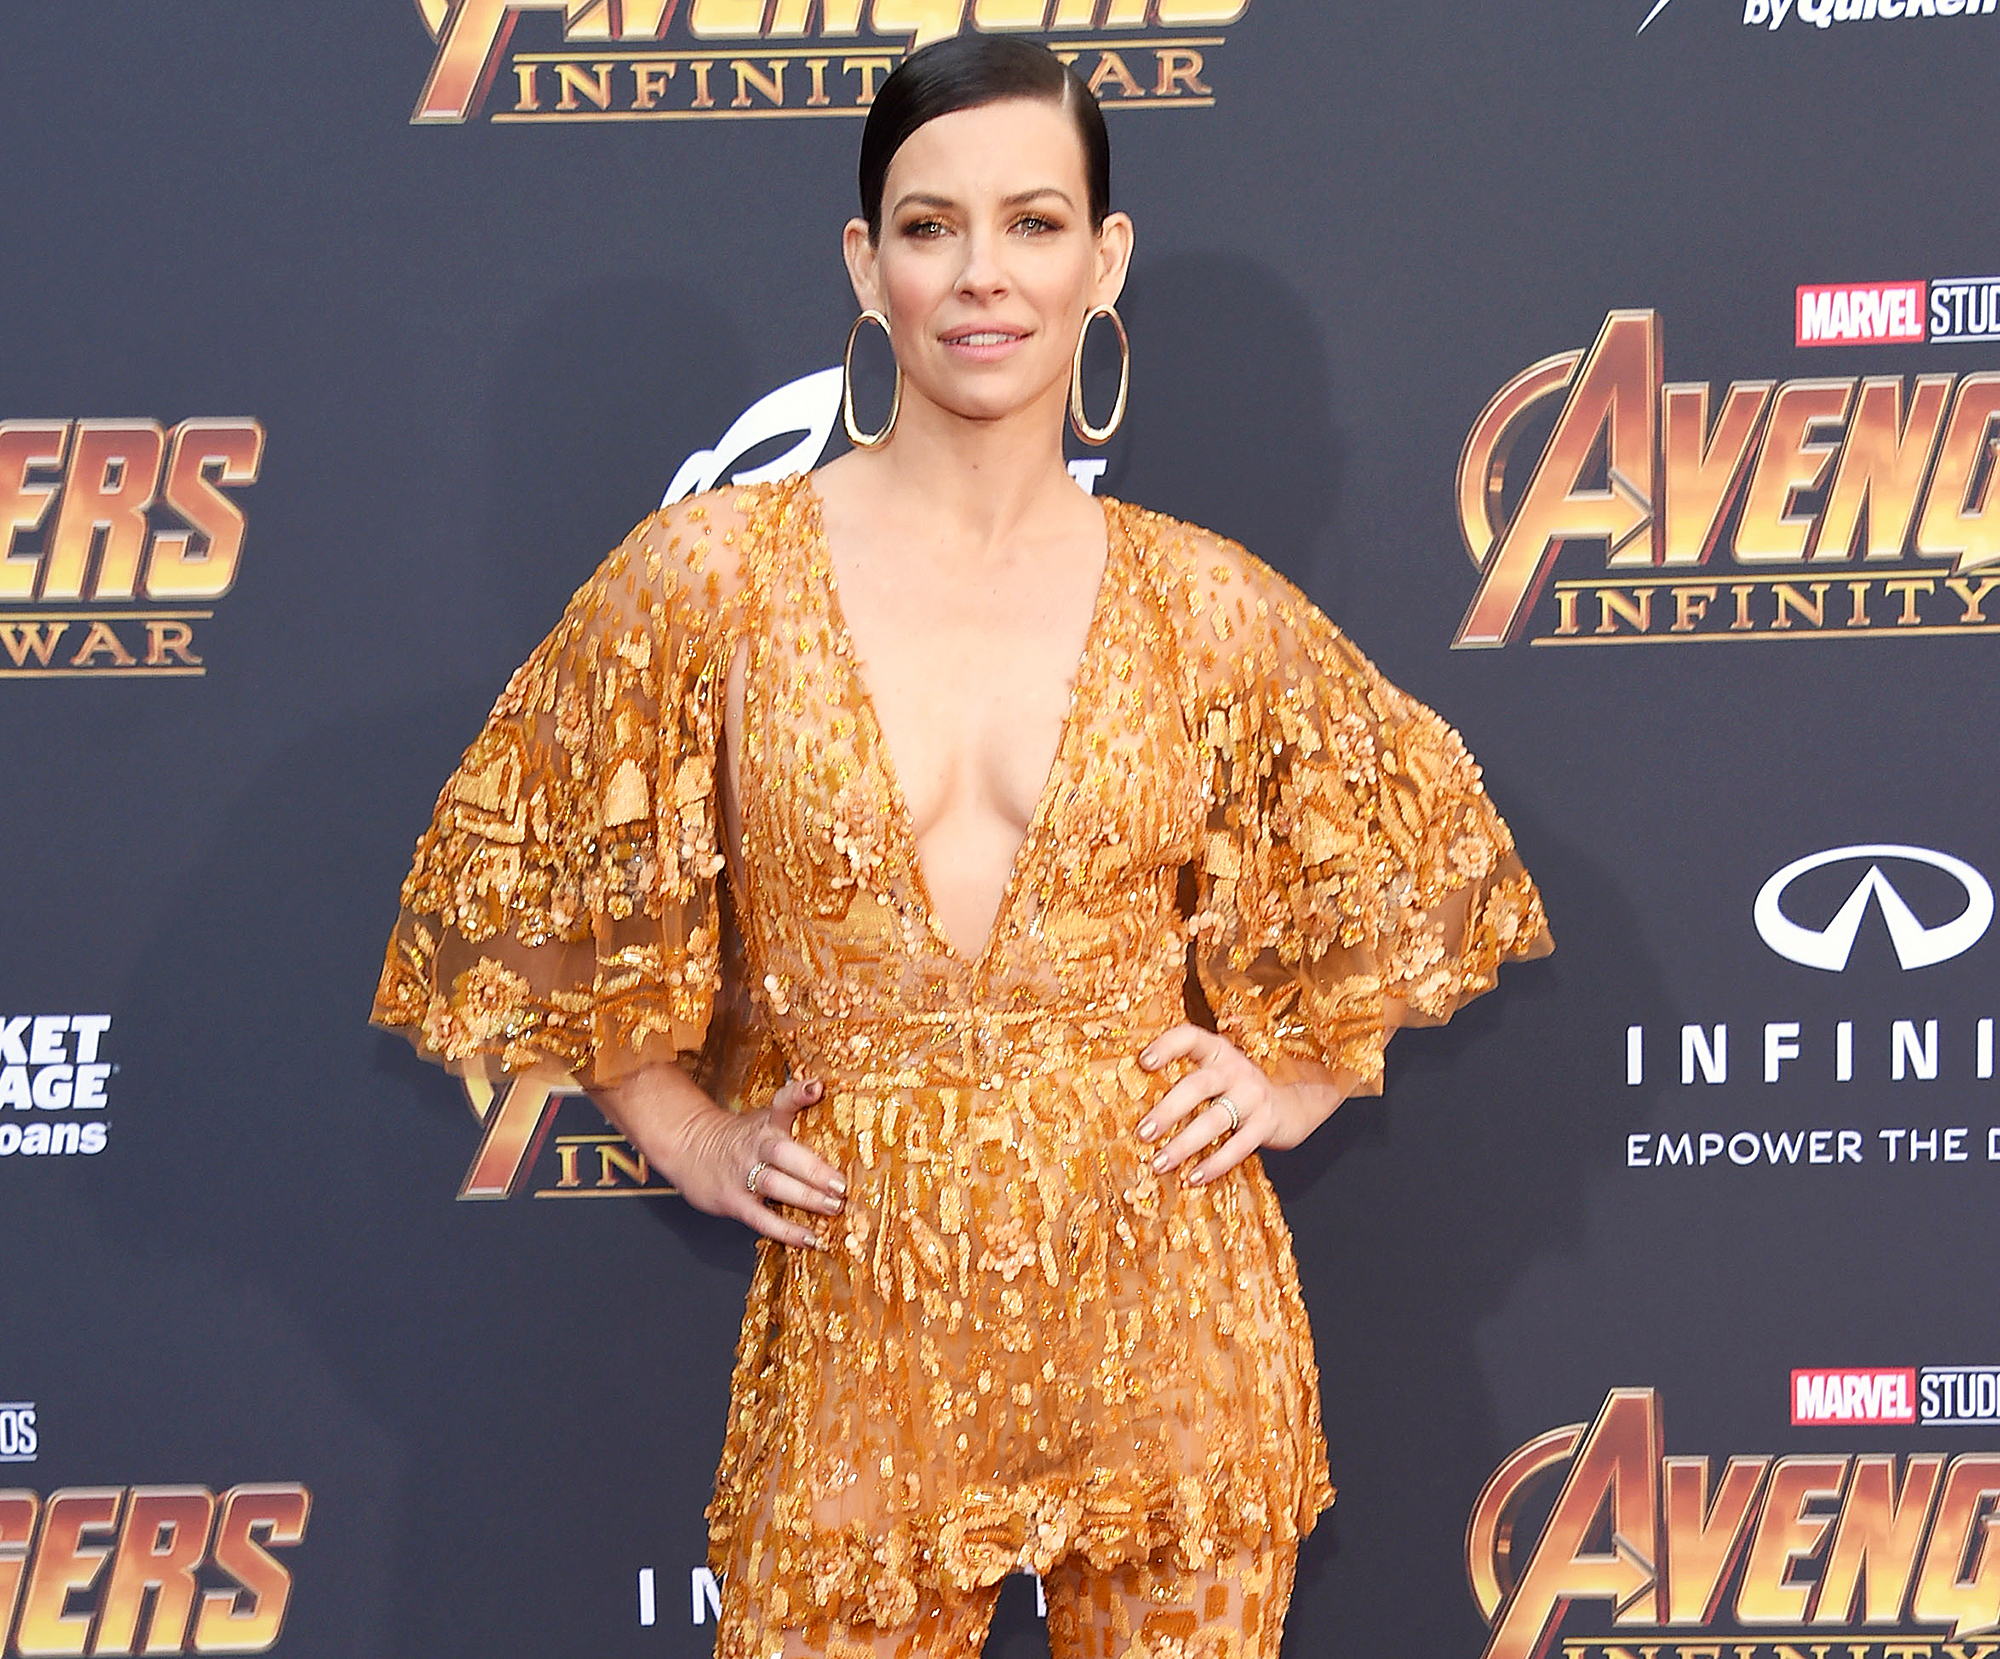 Removed Evangeline lily nude photos